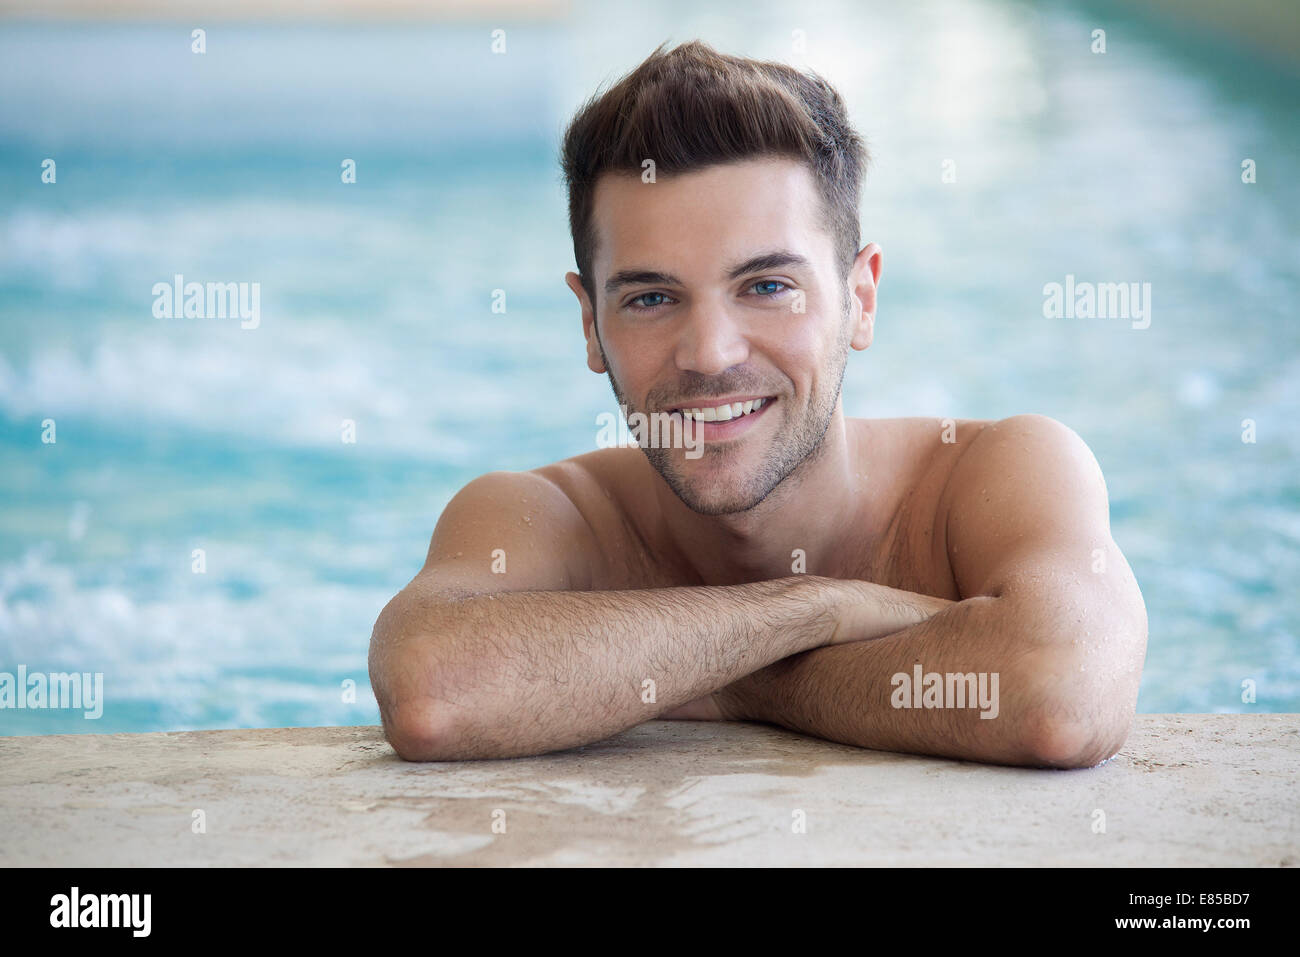 Young man in pool resting against wall - Stock Image